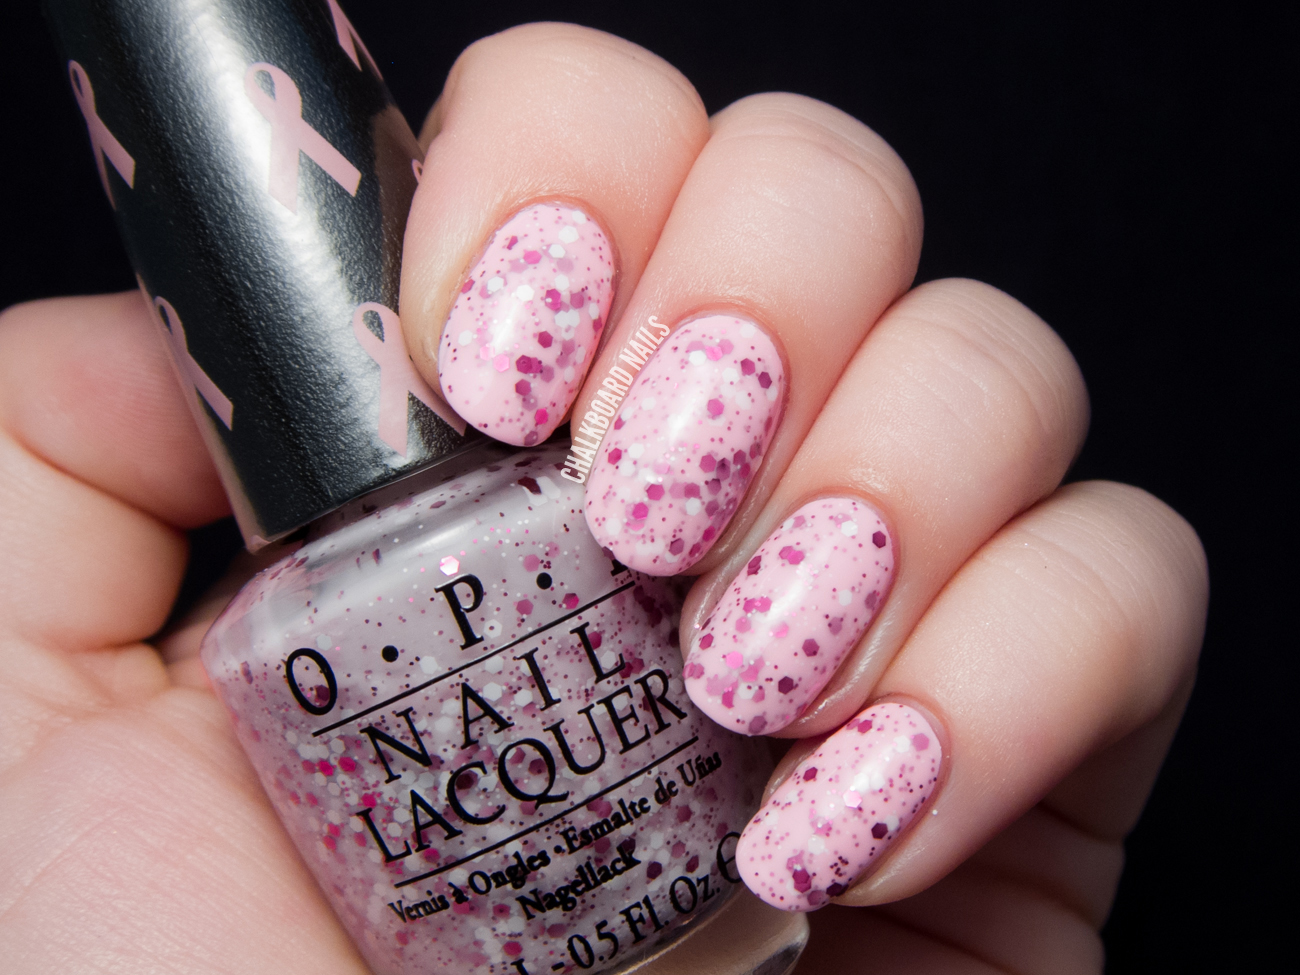 OPI The Power of Pink via @chalkboardnails